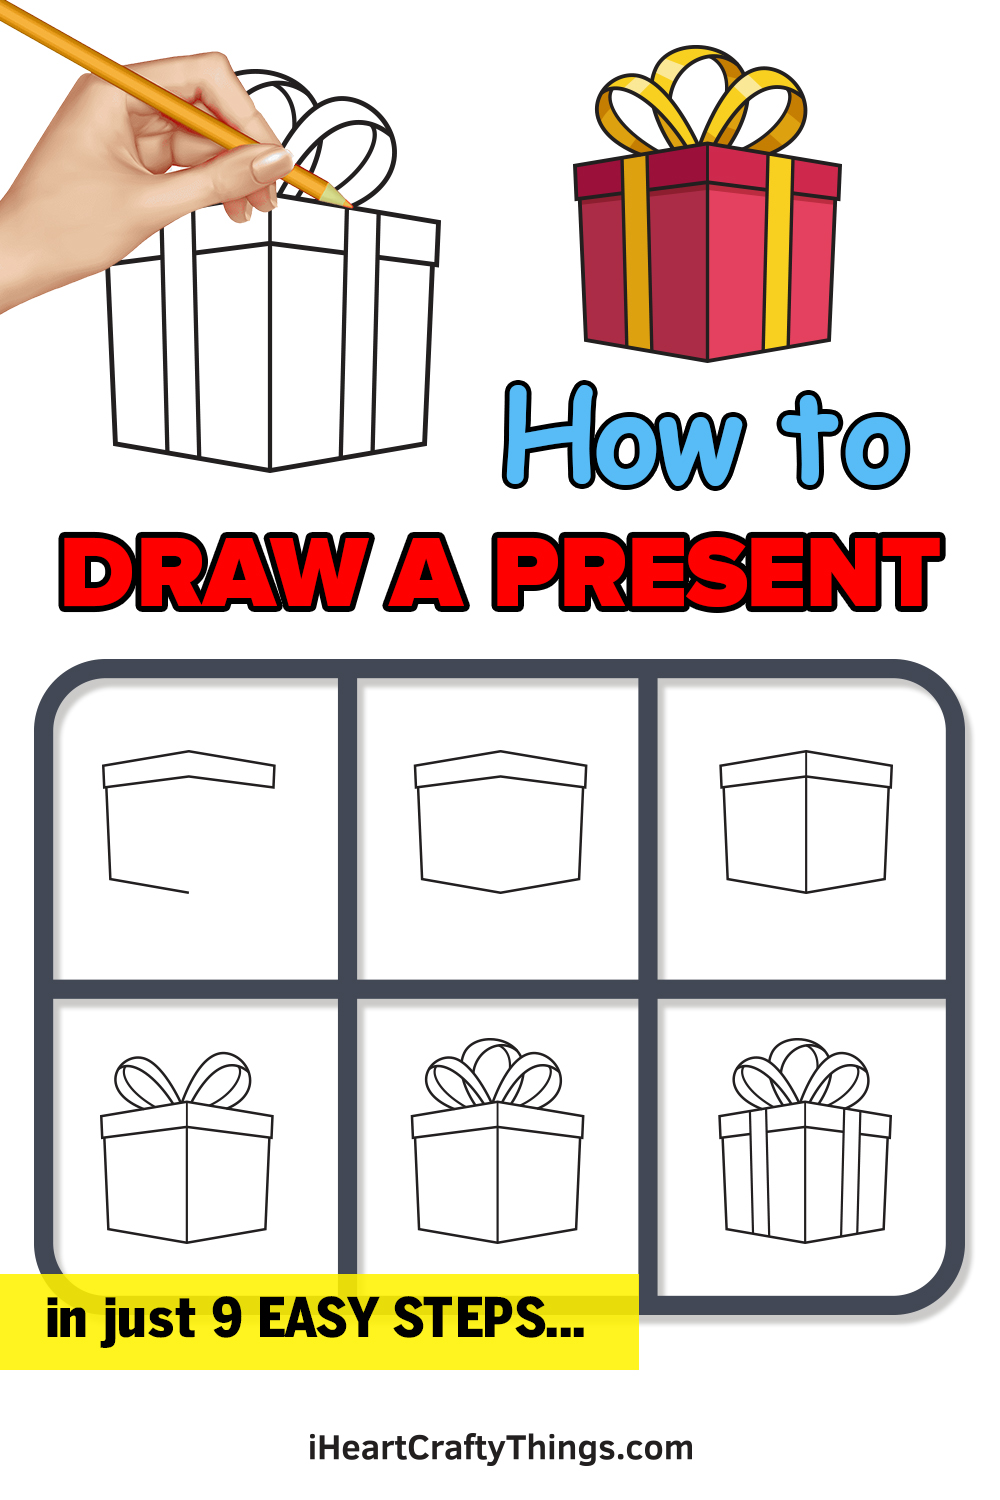 how to draw a present in 9 easy steps